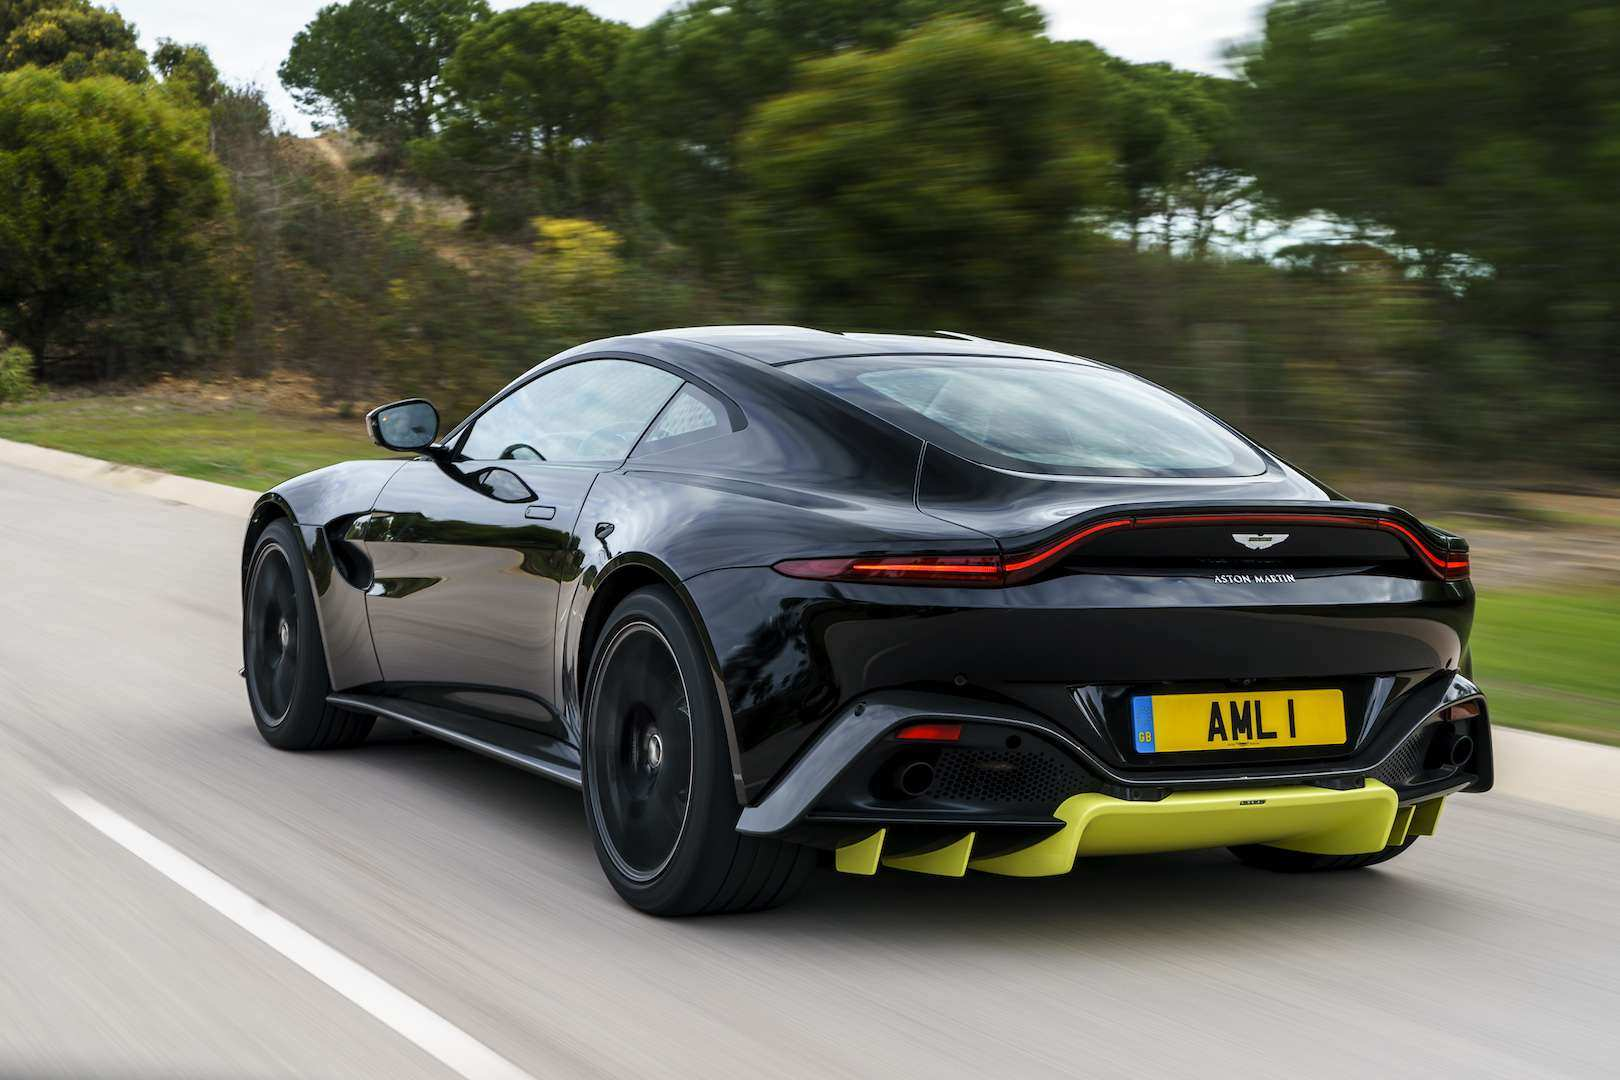 93 Gallery of 2019 Aston Martin Vantage Review Exterior by 2019 Aston Martin Vantage Review